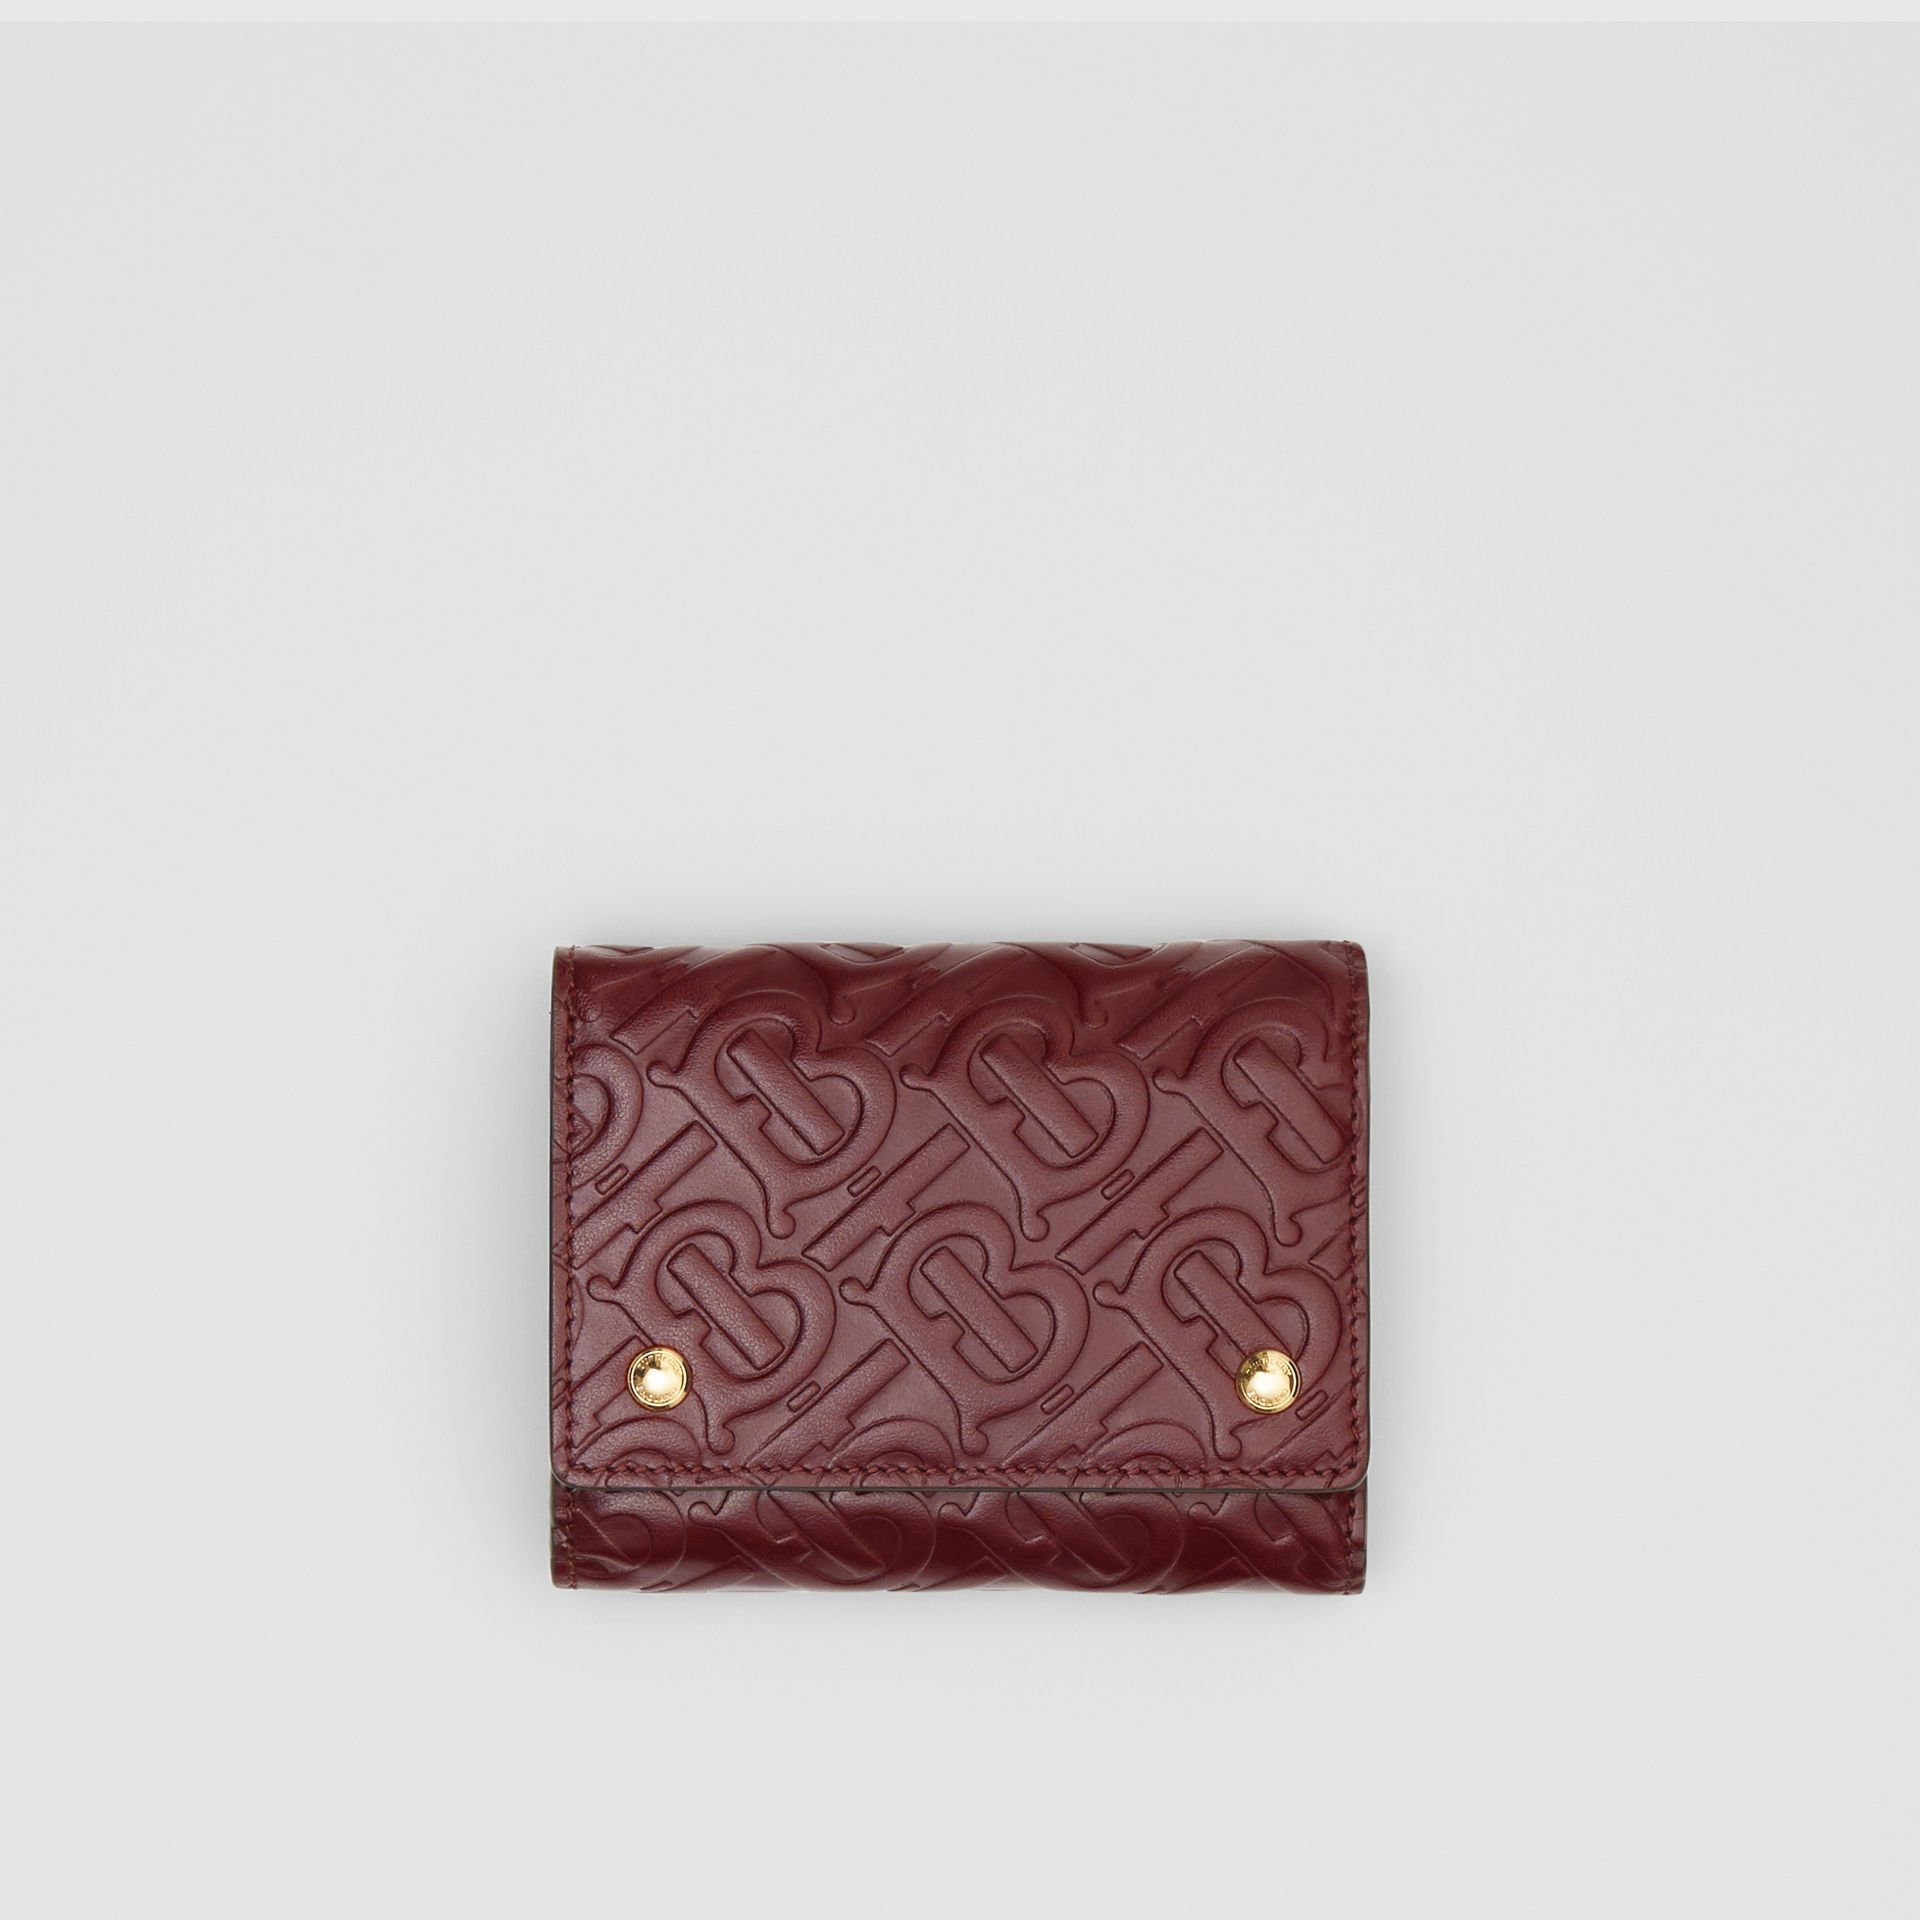 Small Monogram Leather Folding Wallet in Oxblood - Women | Burberry - gallery image 0